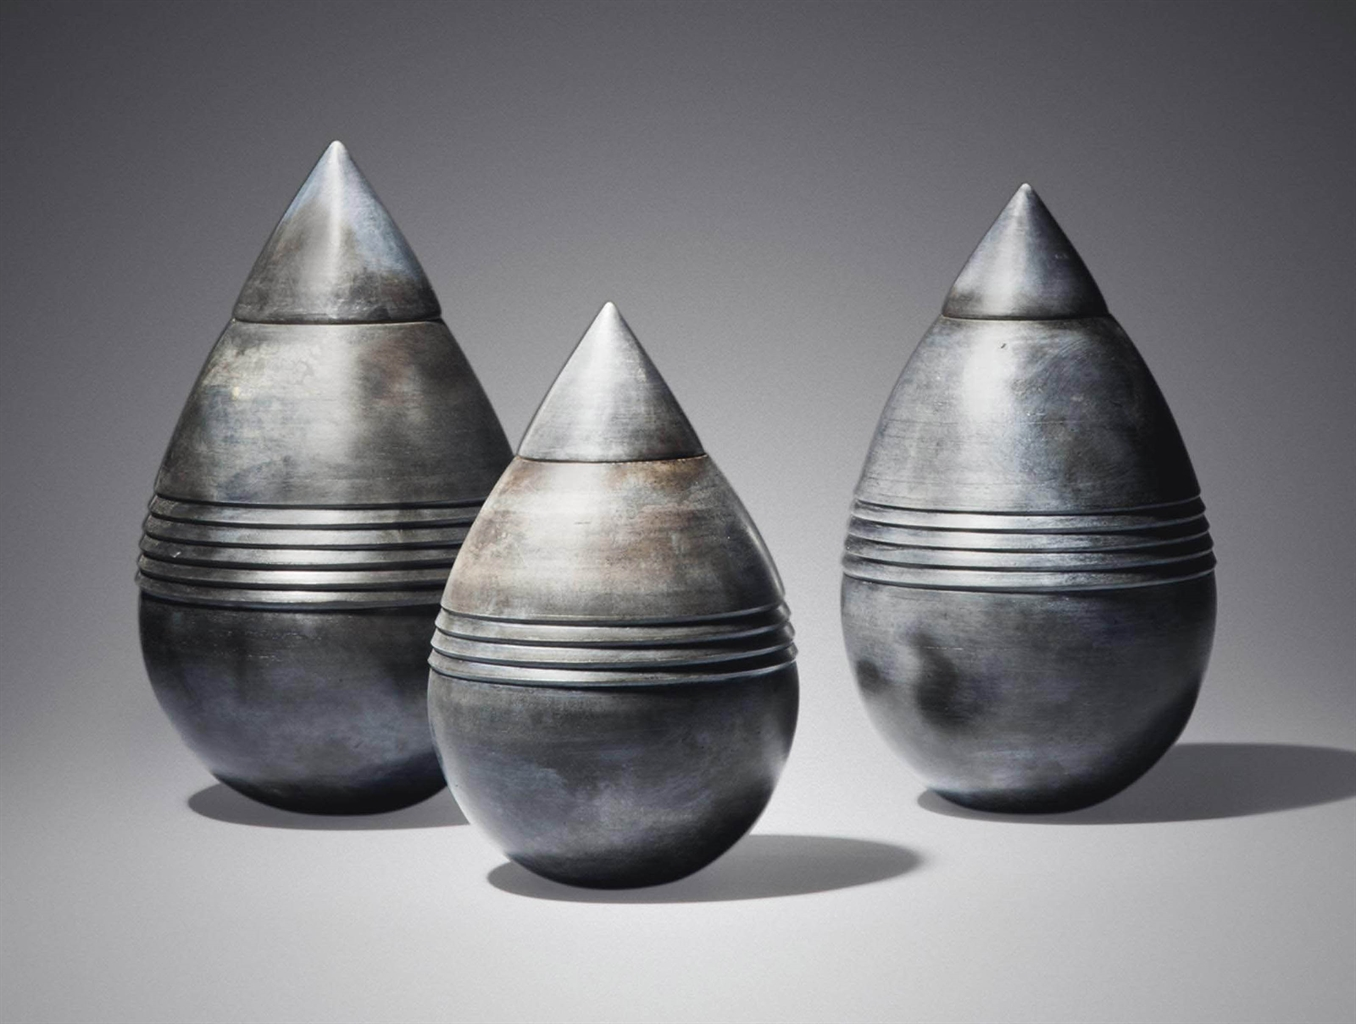 Chuma Maweni-'Smoked Teardrop', A Group Of Three Unique Vases, 2016-2016